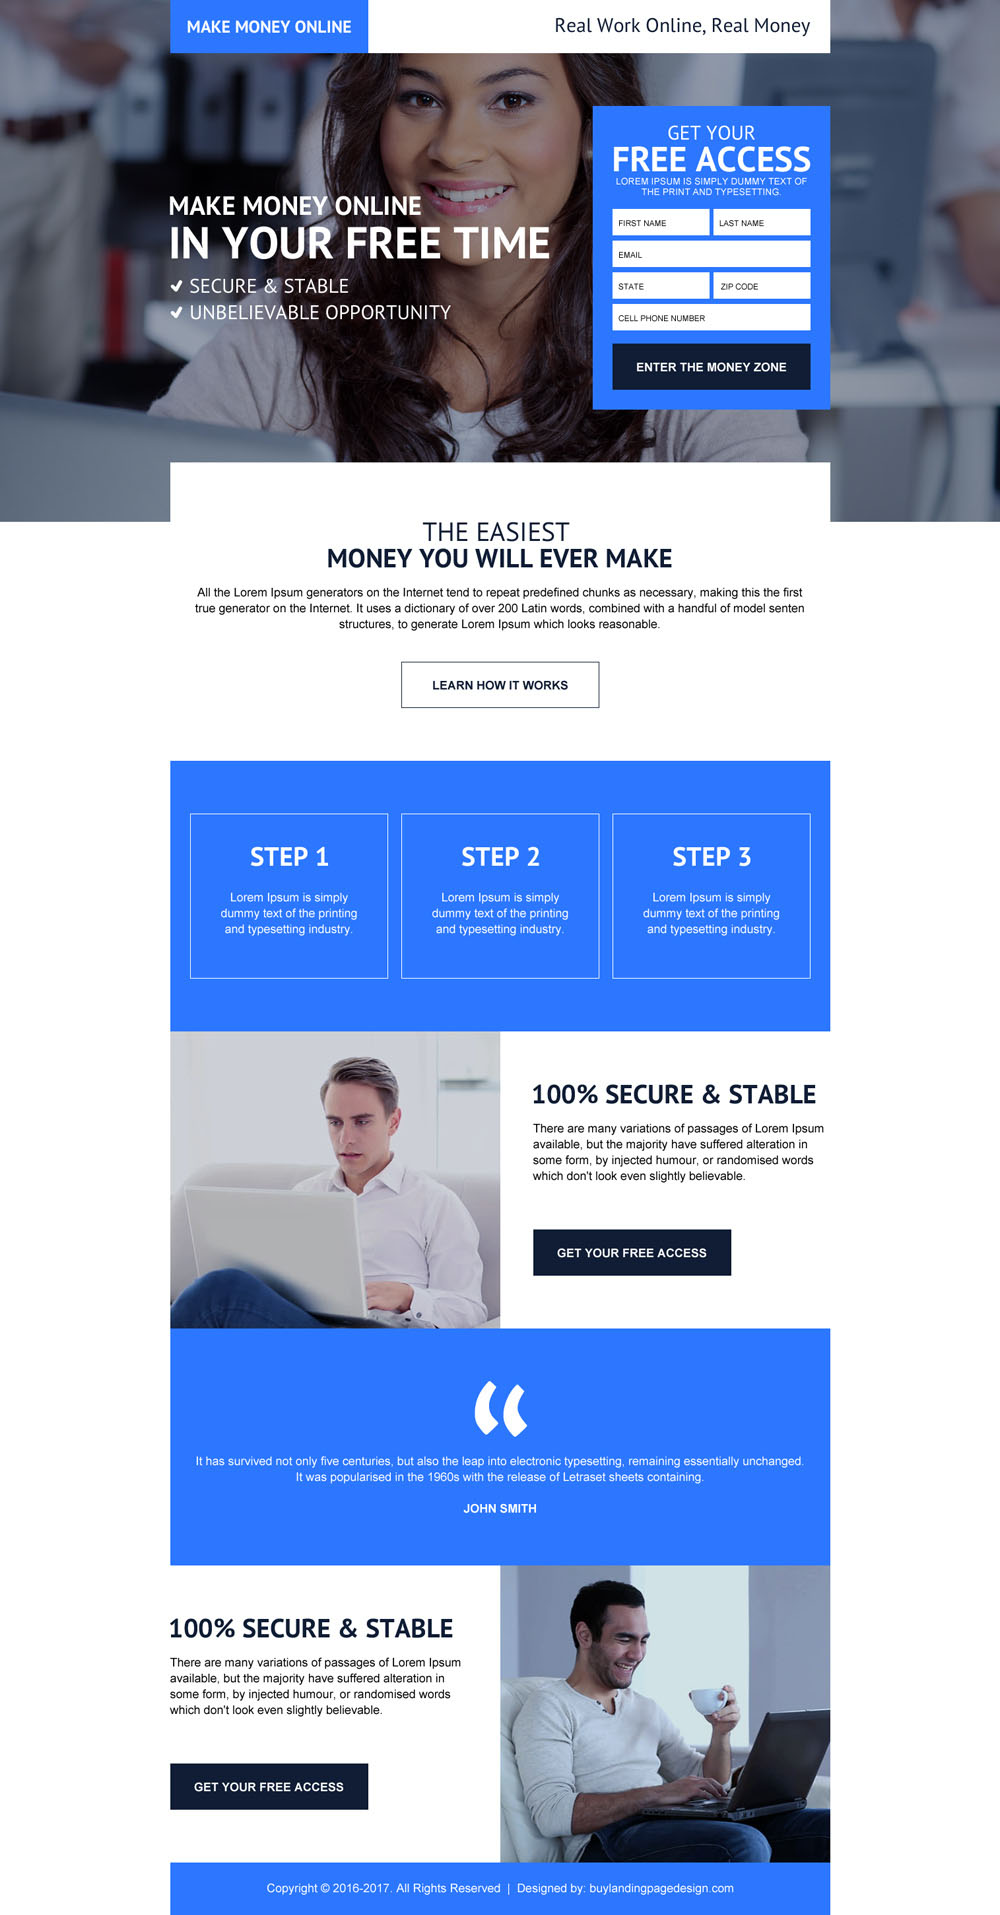 best-way-to-make-money-online-lead-generation-landing-page-design-016